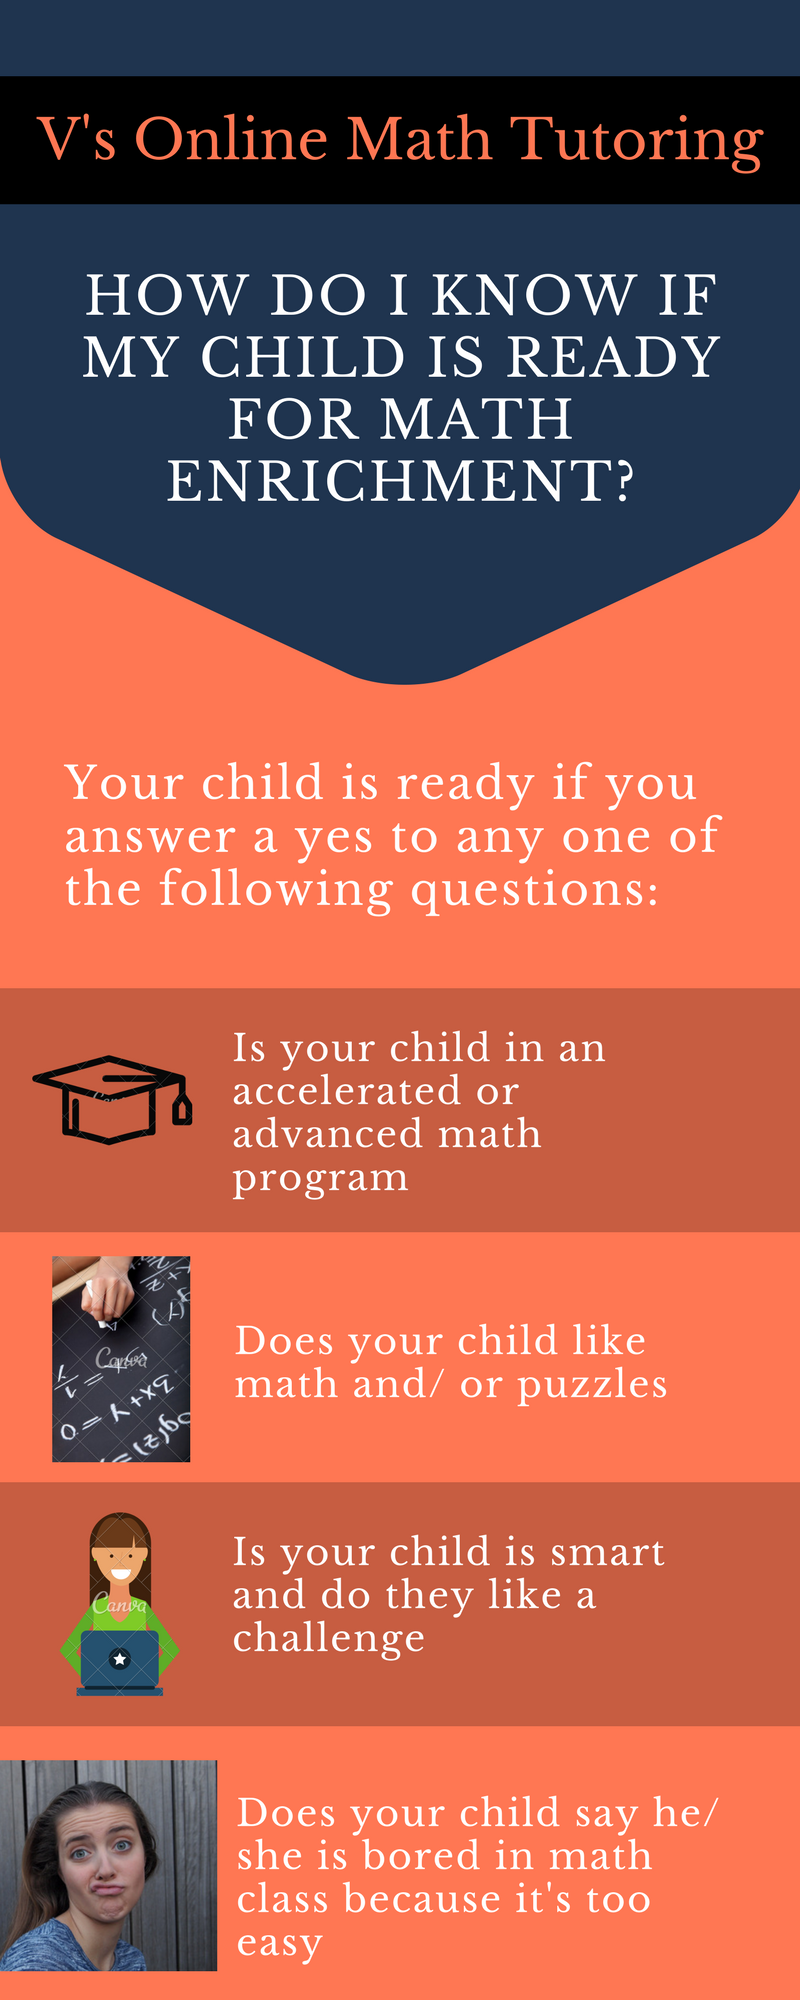 How do I know if my Child is ready for Math Enrichment Programs?